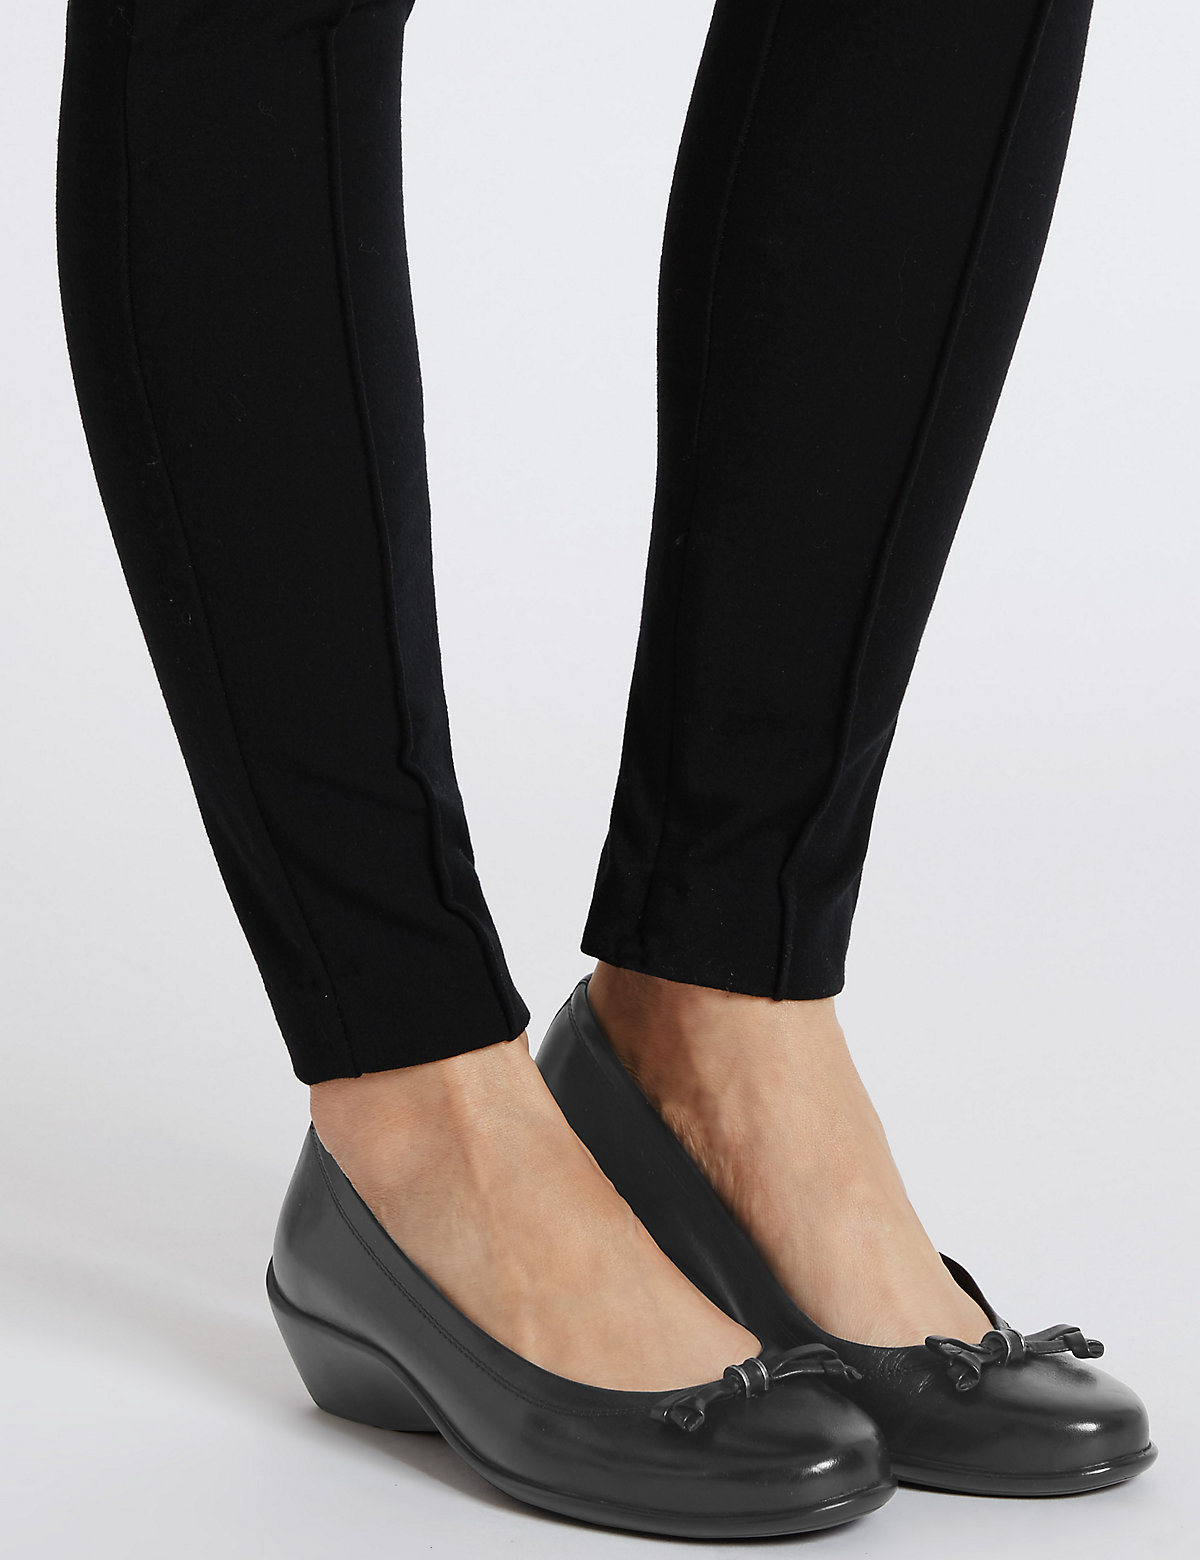 Footglove Wide Fit Leather Wedge Ballerina Pumps